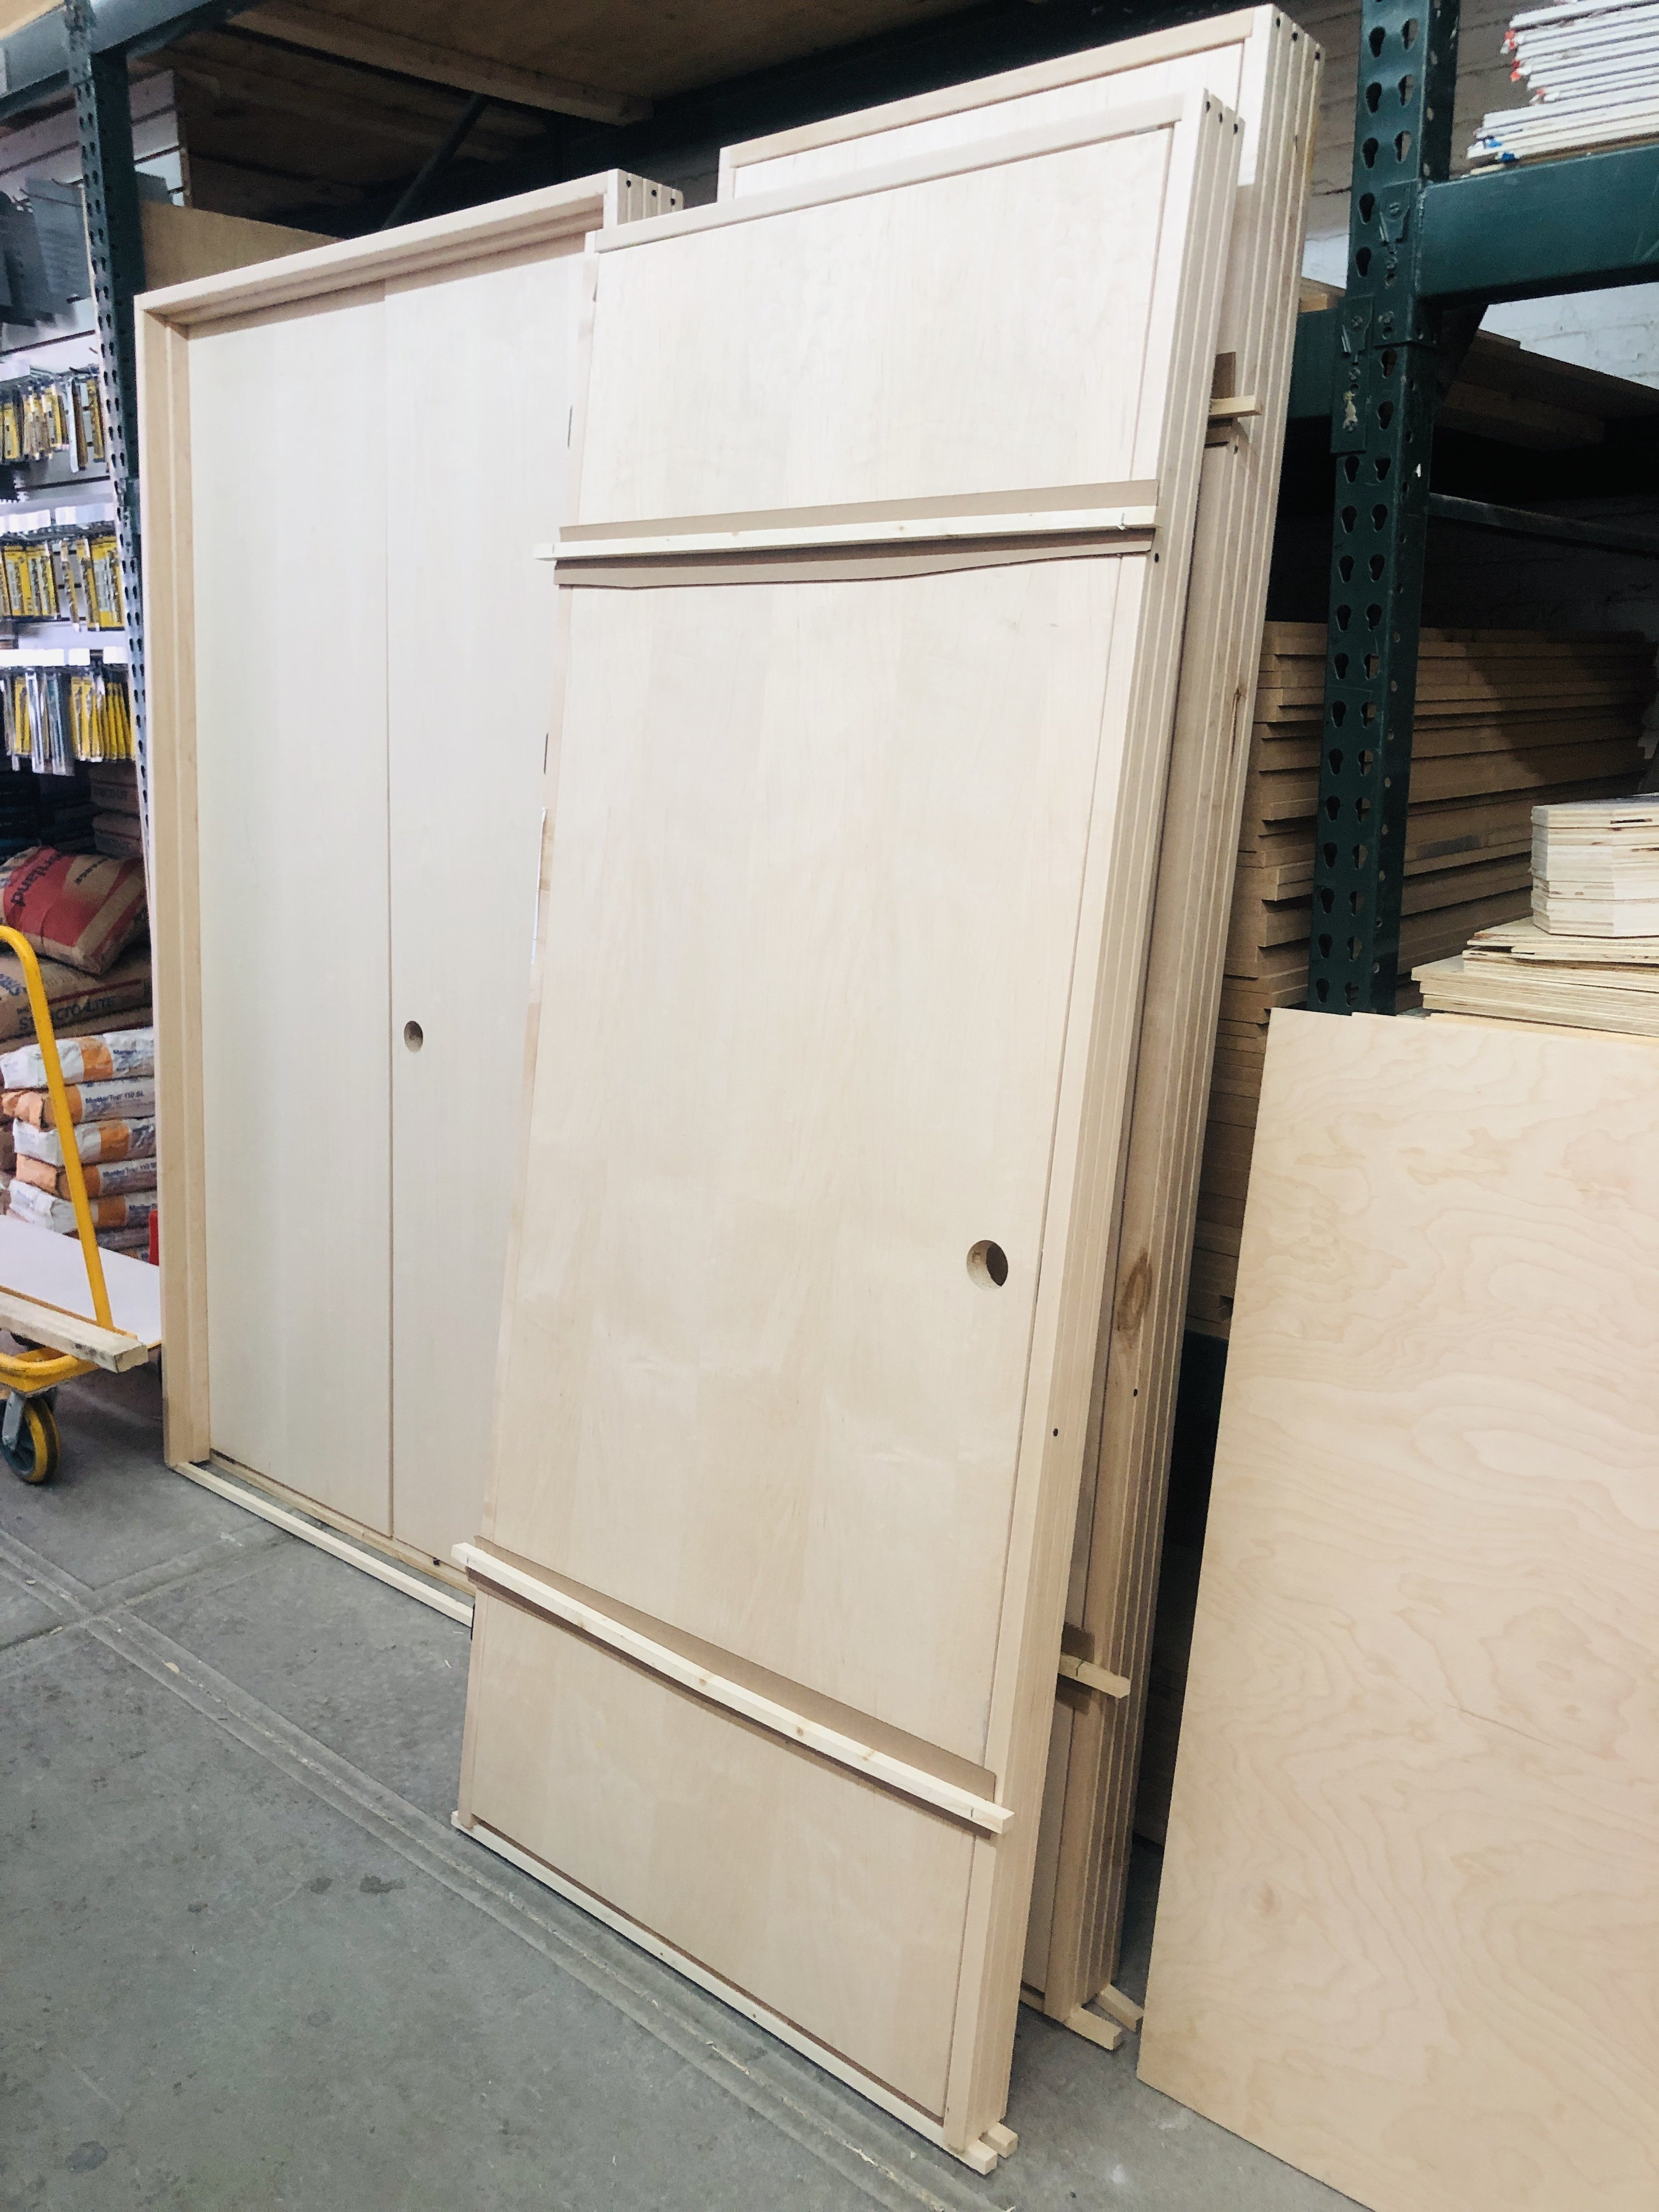 Pre-Hung Doors vs. Slab Only Doors - What's the difference? 3